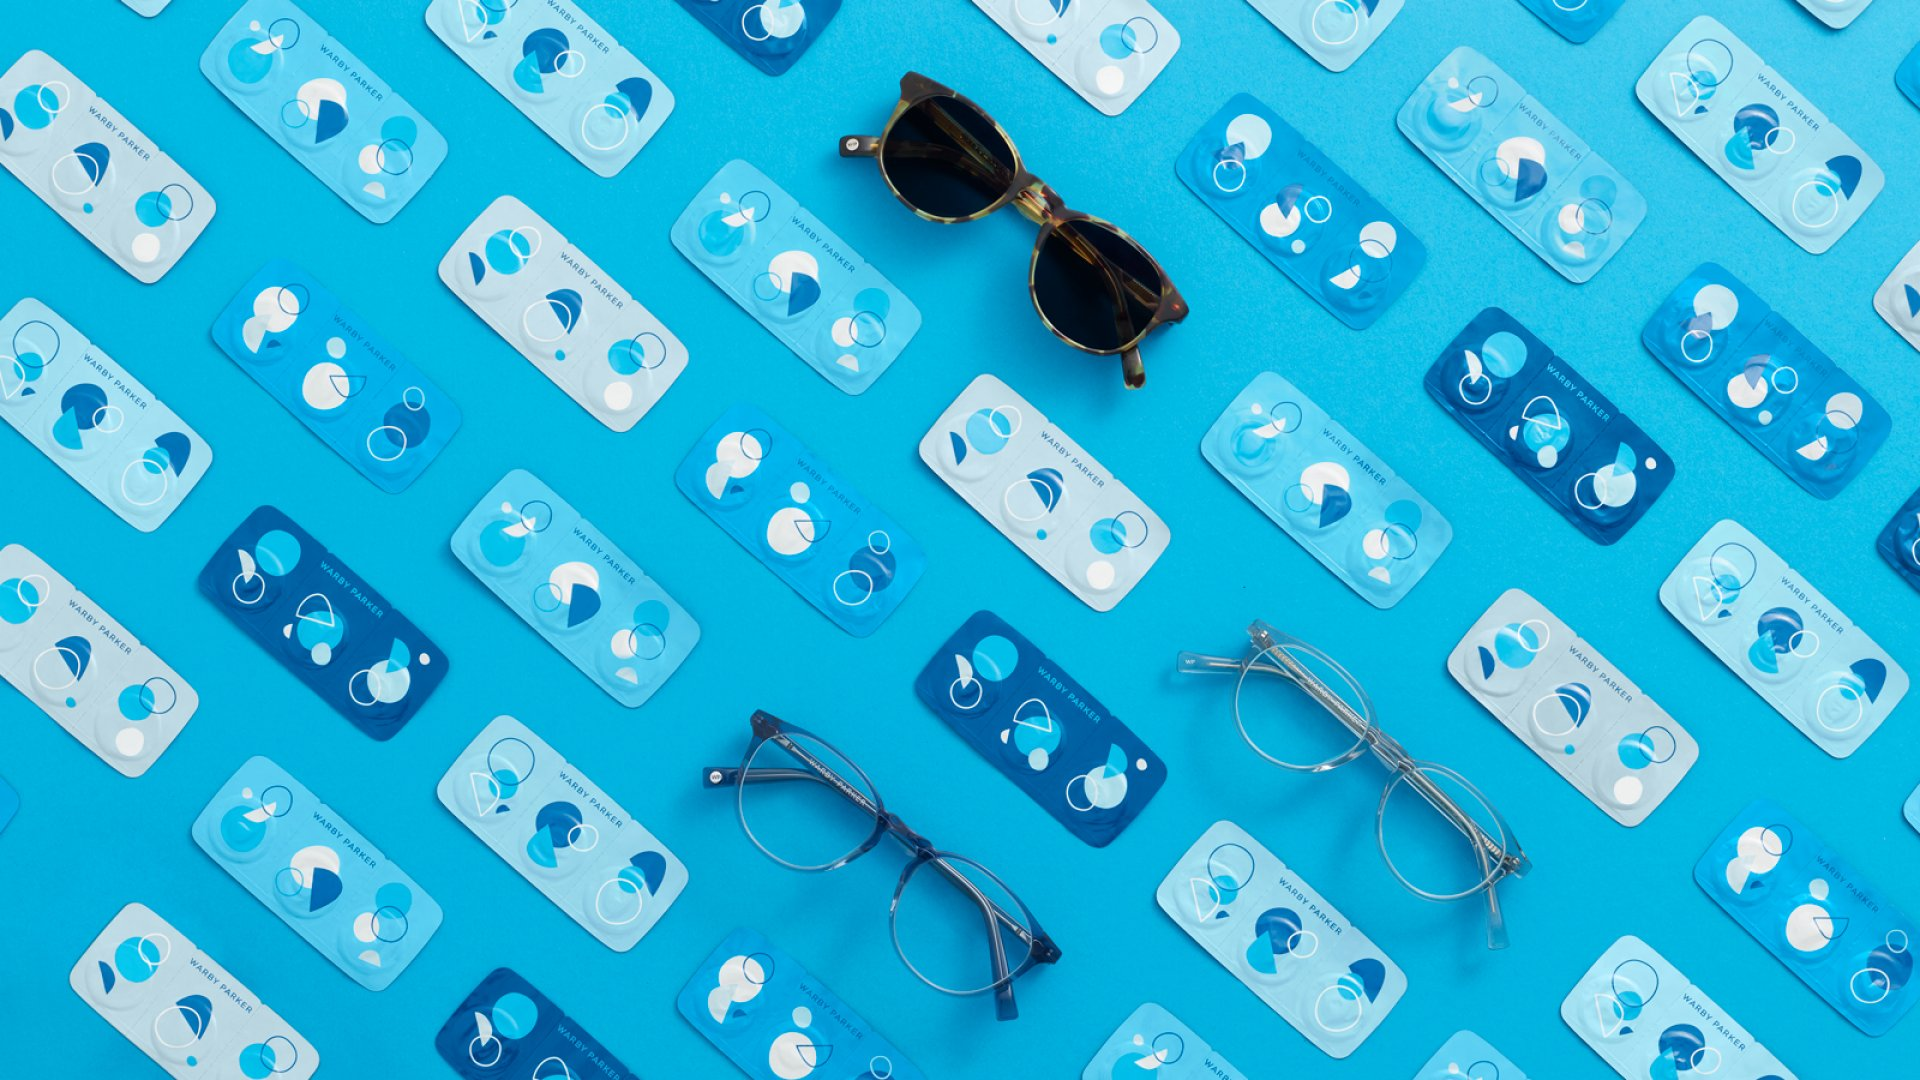 Warby Parker Is Launching Its First New Brand in Nearly a Decade. It's Not What You Might Expect